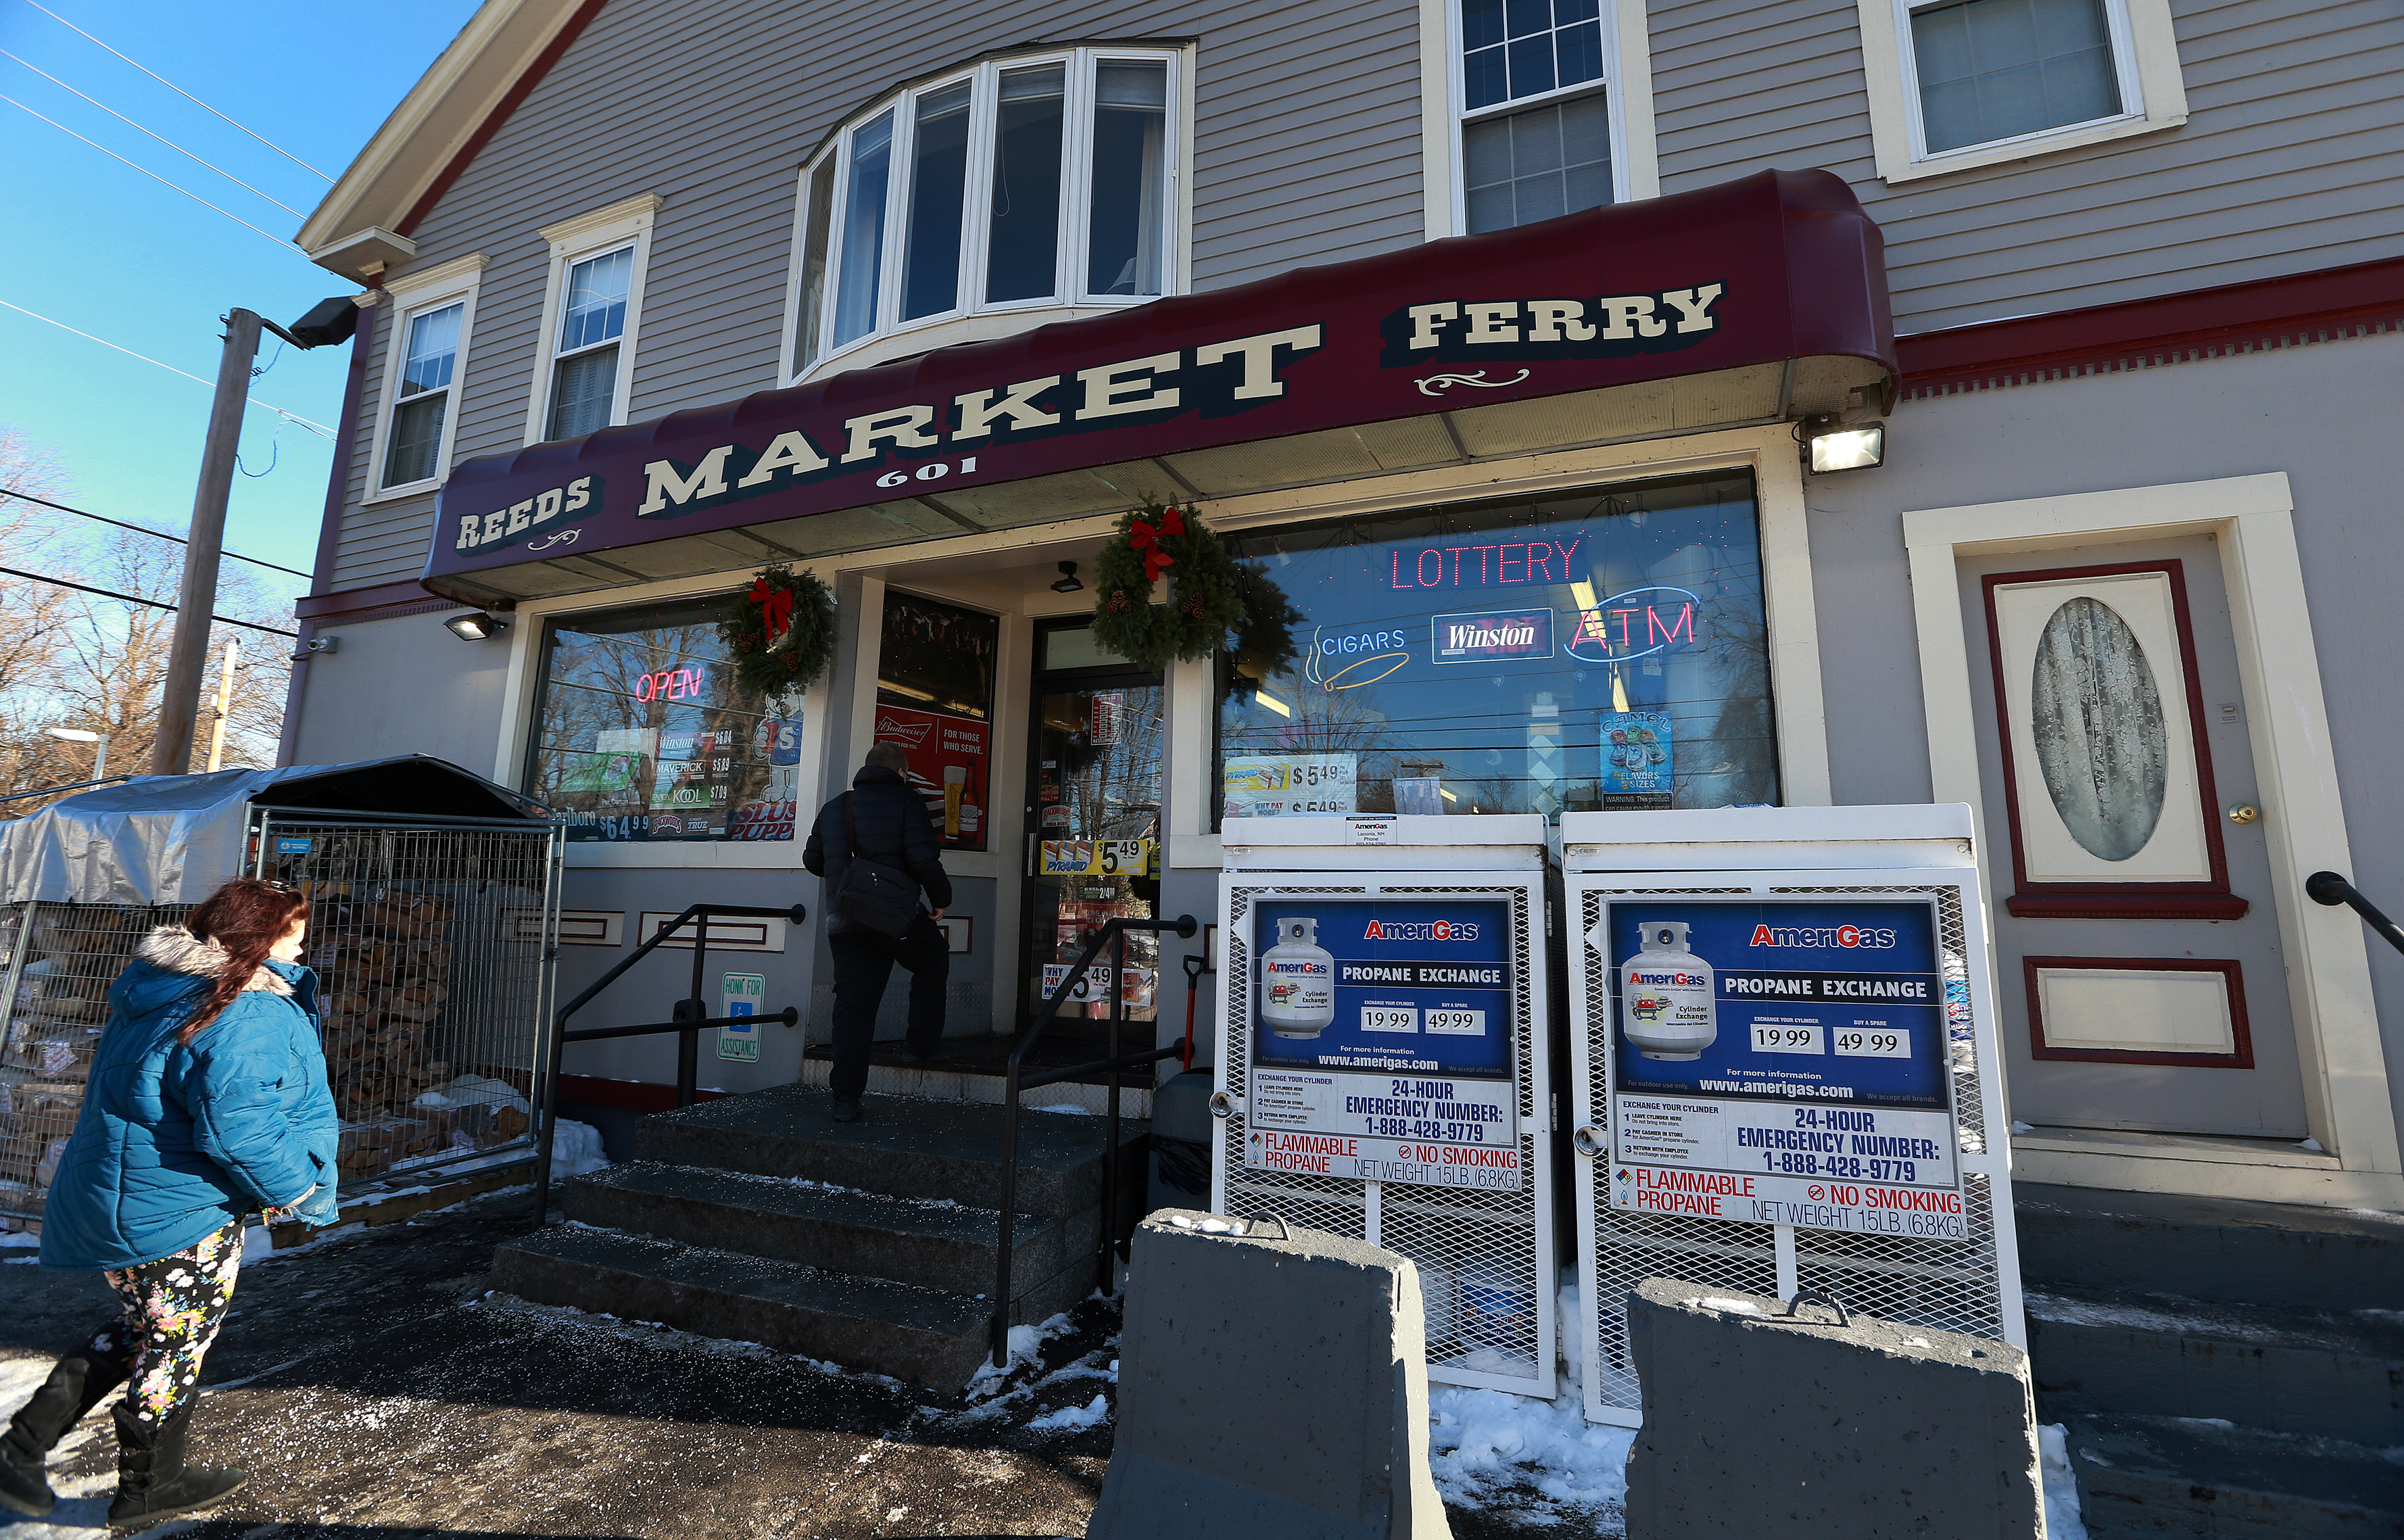 The exterior of Reeds Ferry Market in Merrimack, NH, where the lone winning ticket in a $559.7 million Powerball drawing was sold, is pictured on Jan. 7, 2018.